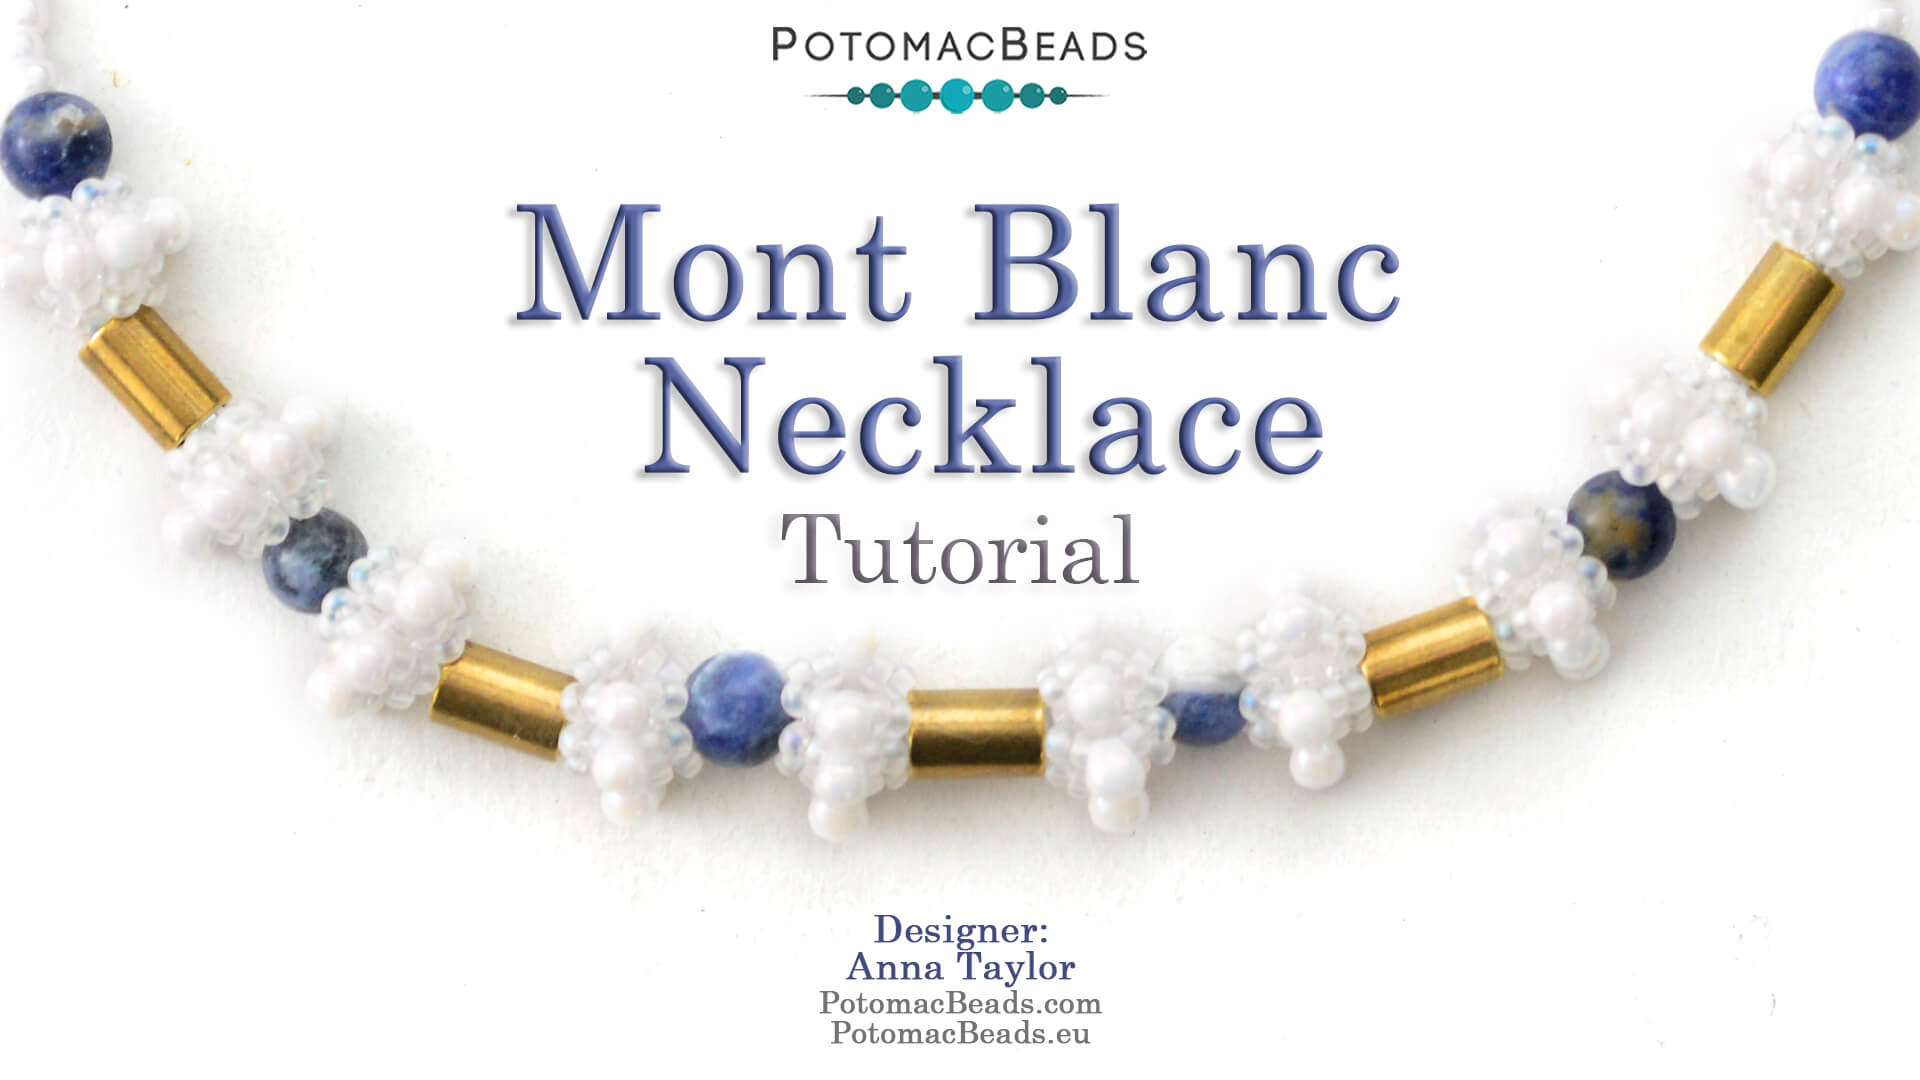 How to Bead / Videos Sorted by Beads / Gemstone Videos / Mont Blanc Necklace Tutorial